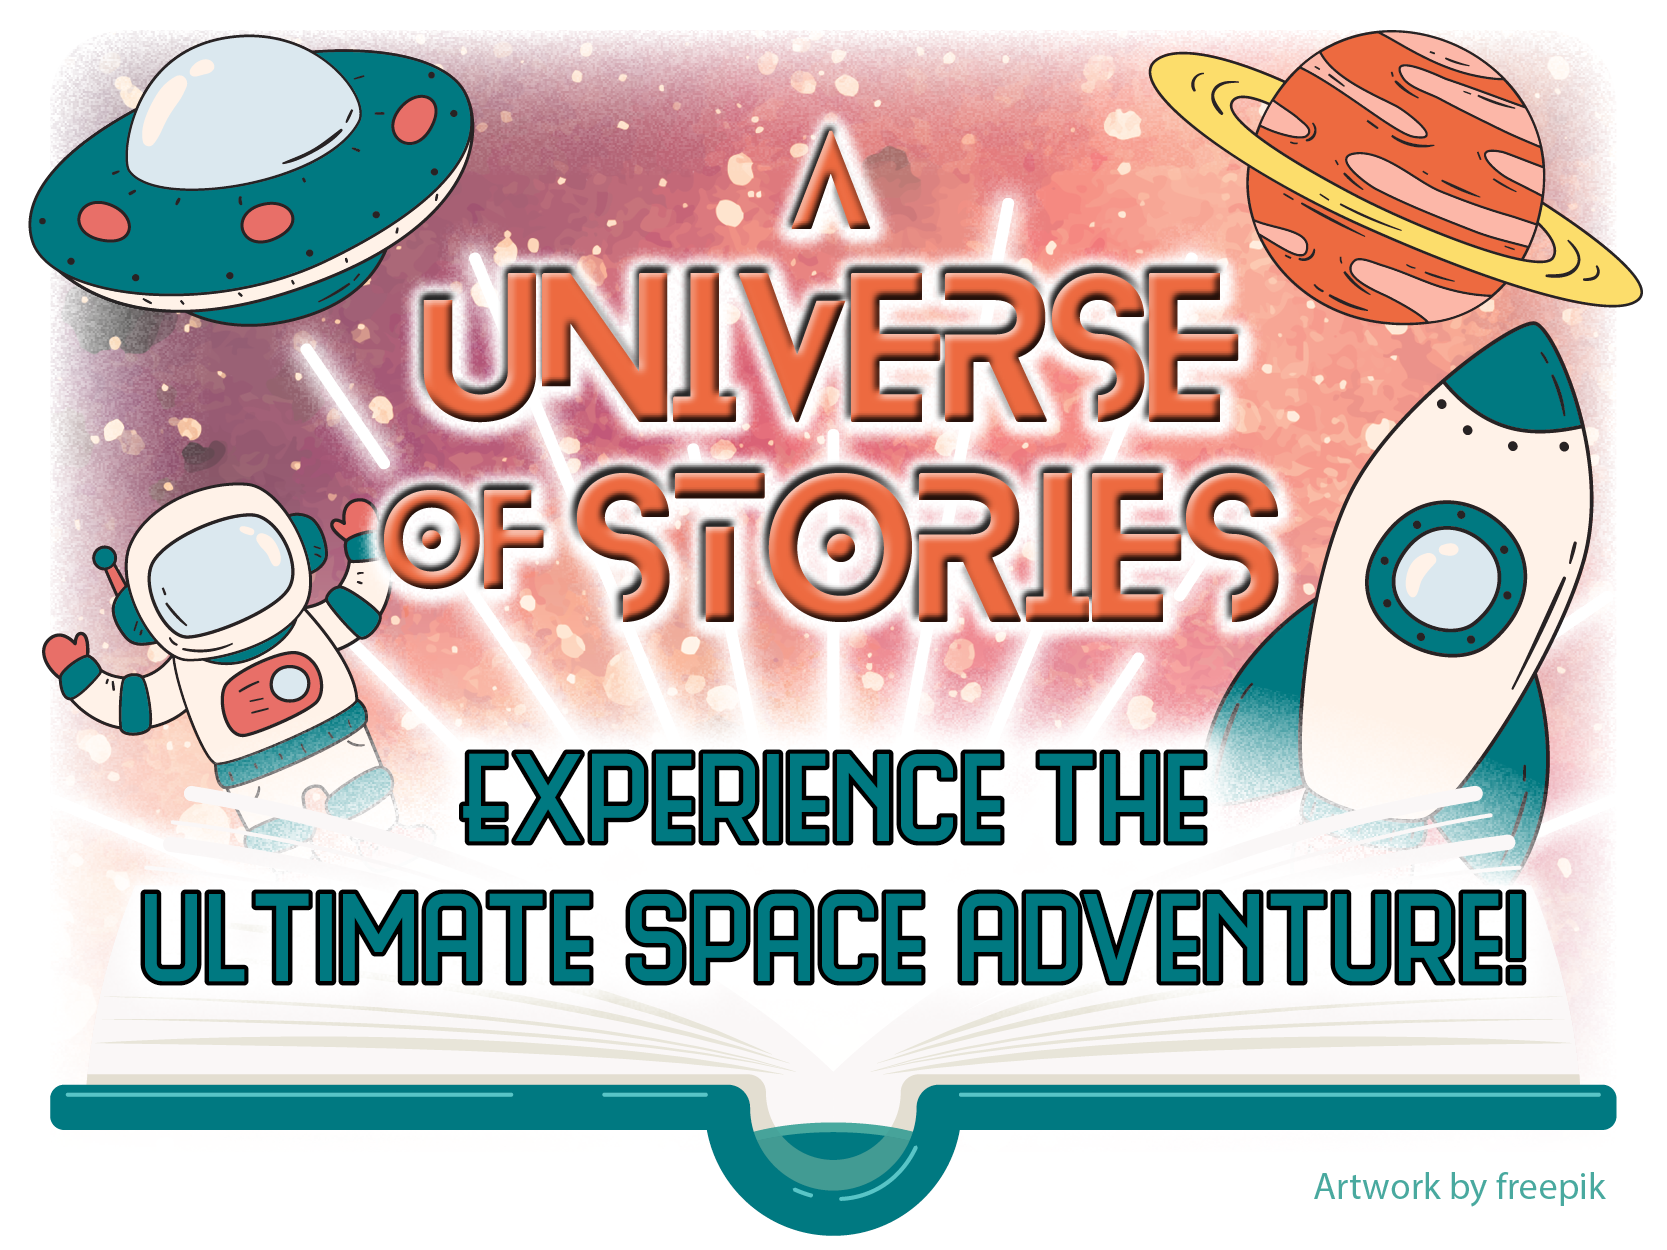 A univers of stories